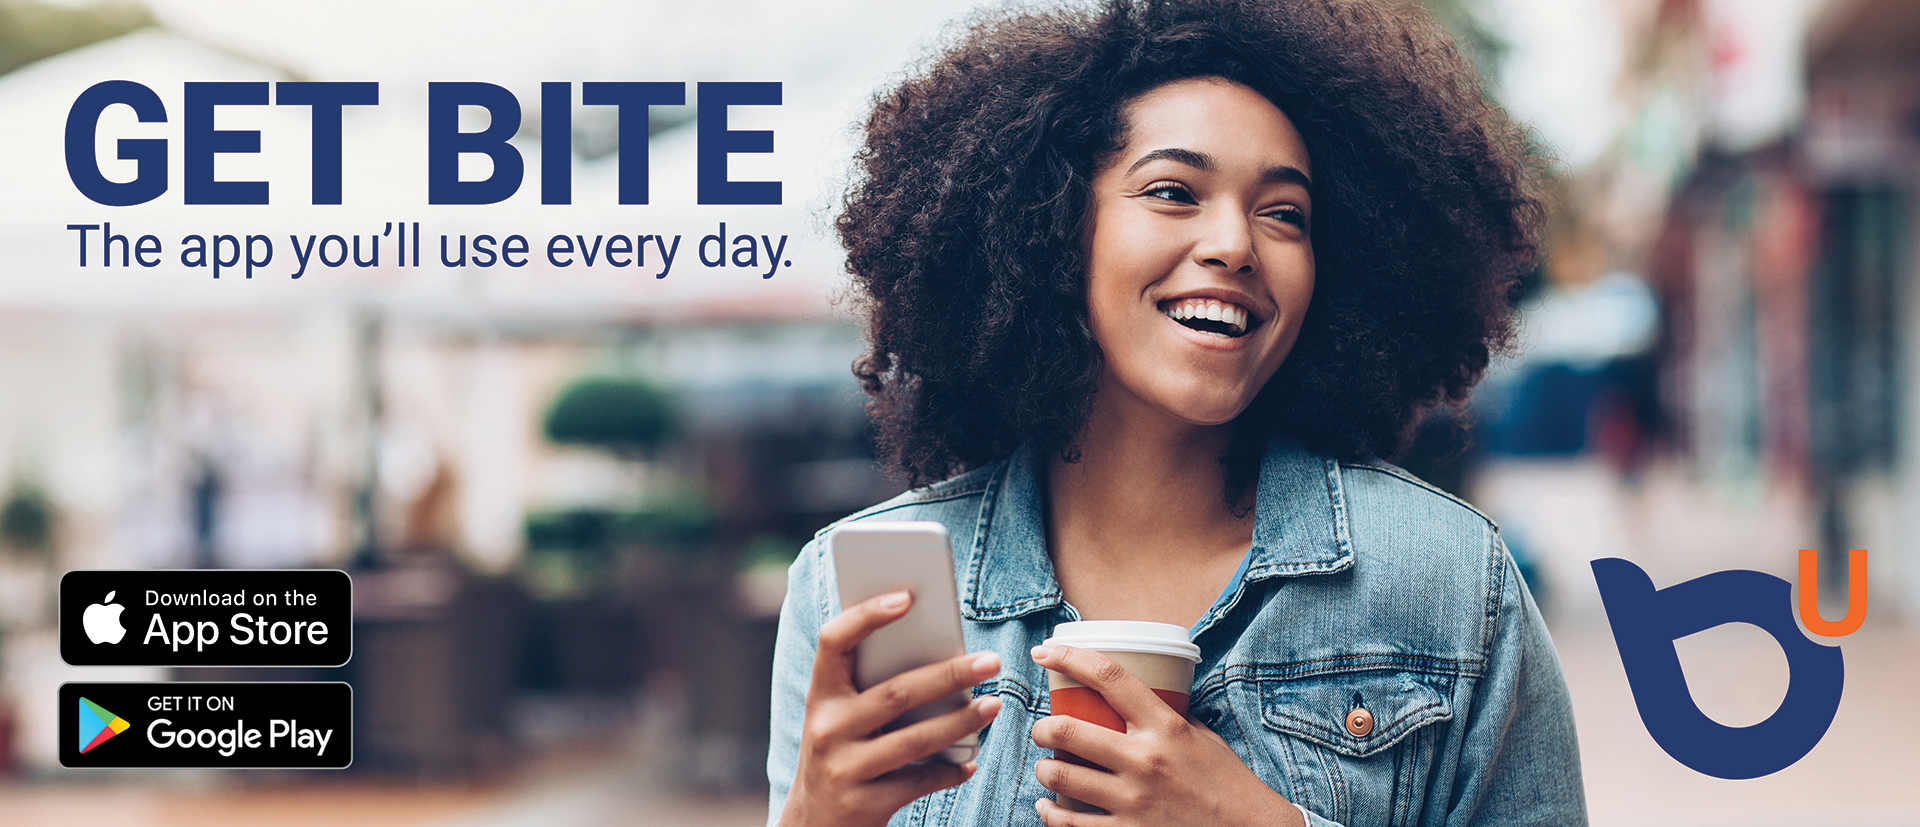 welcome! skip the lines. order all your favorite food on campus for pickup or delivery with Bite. the quick and convenient way to eat.